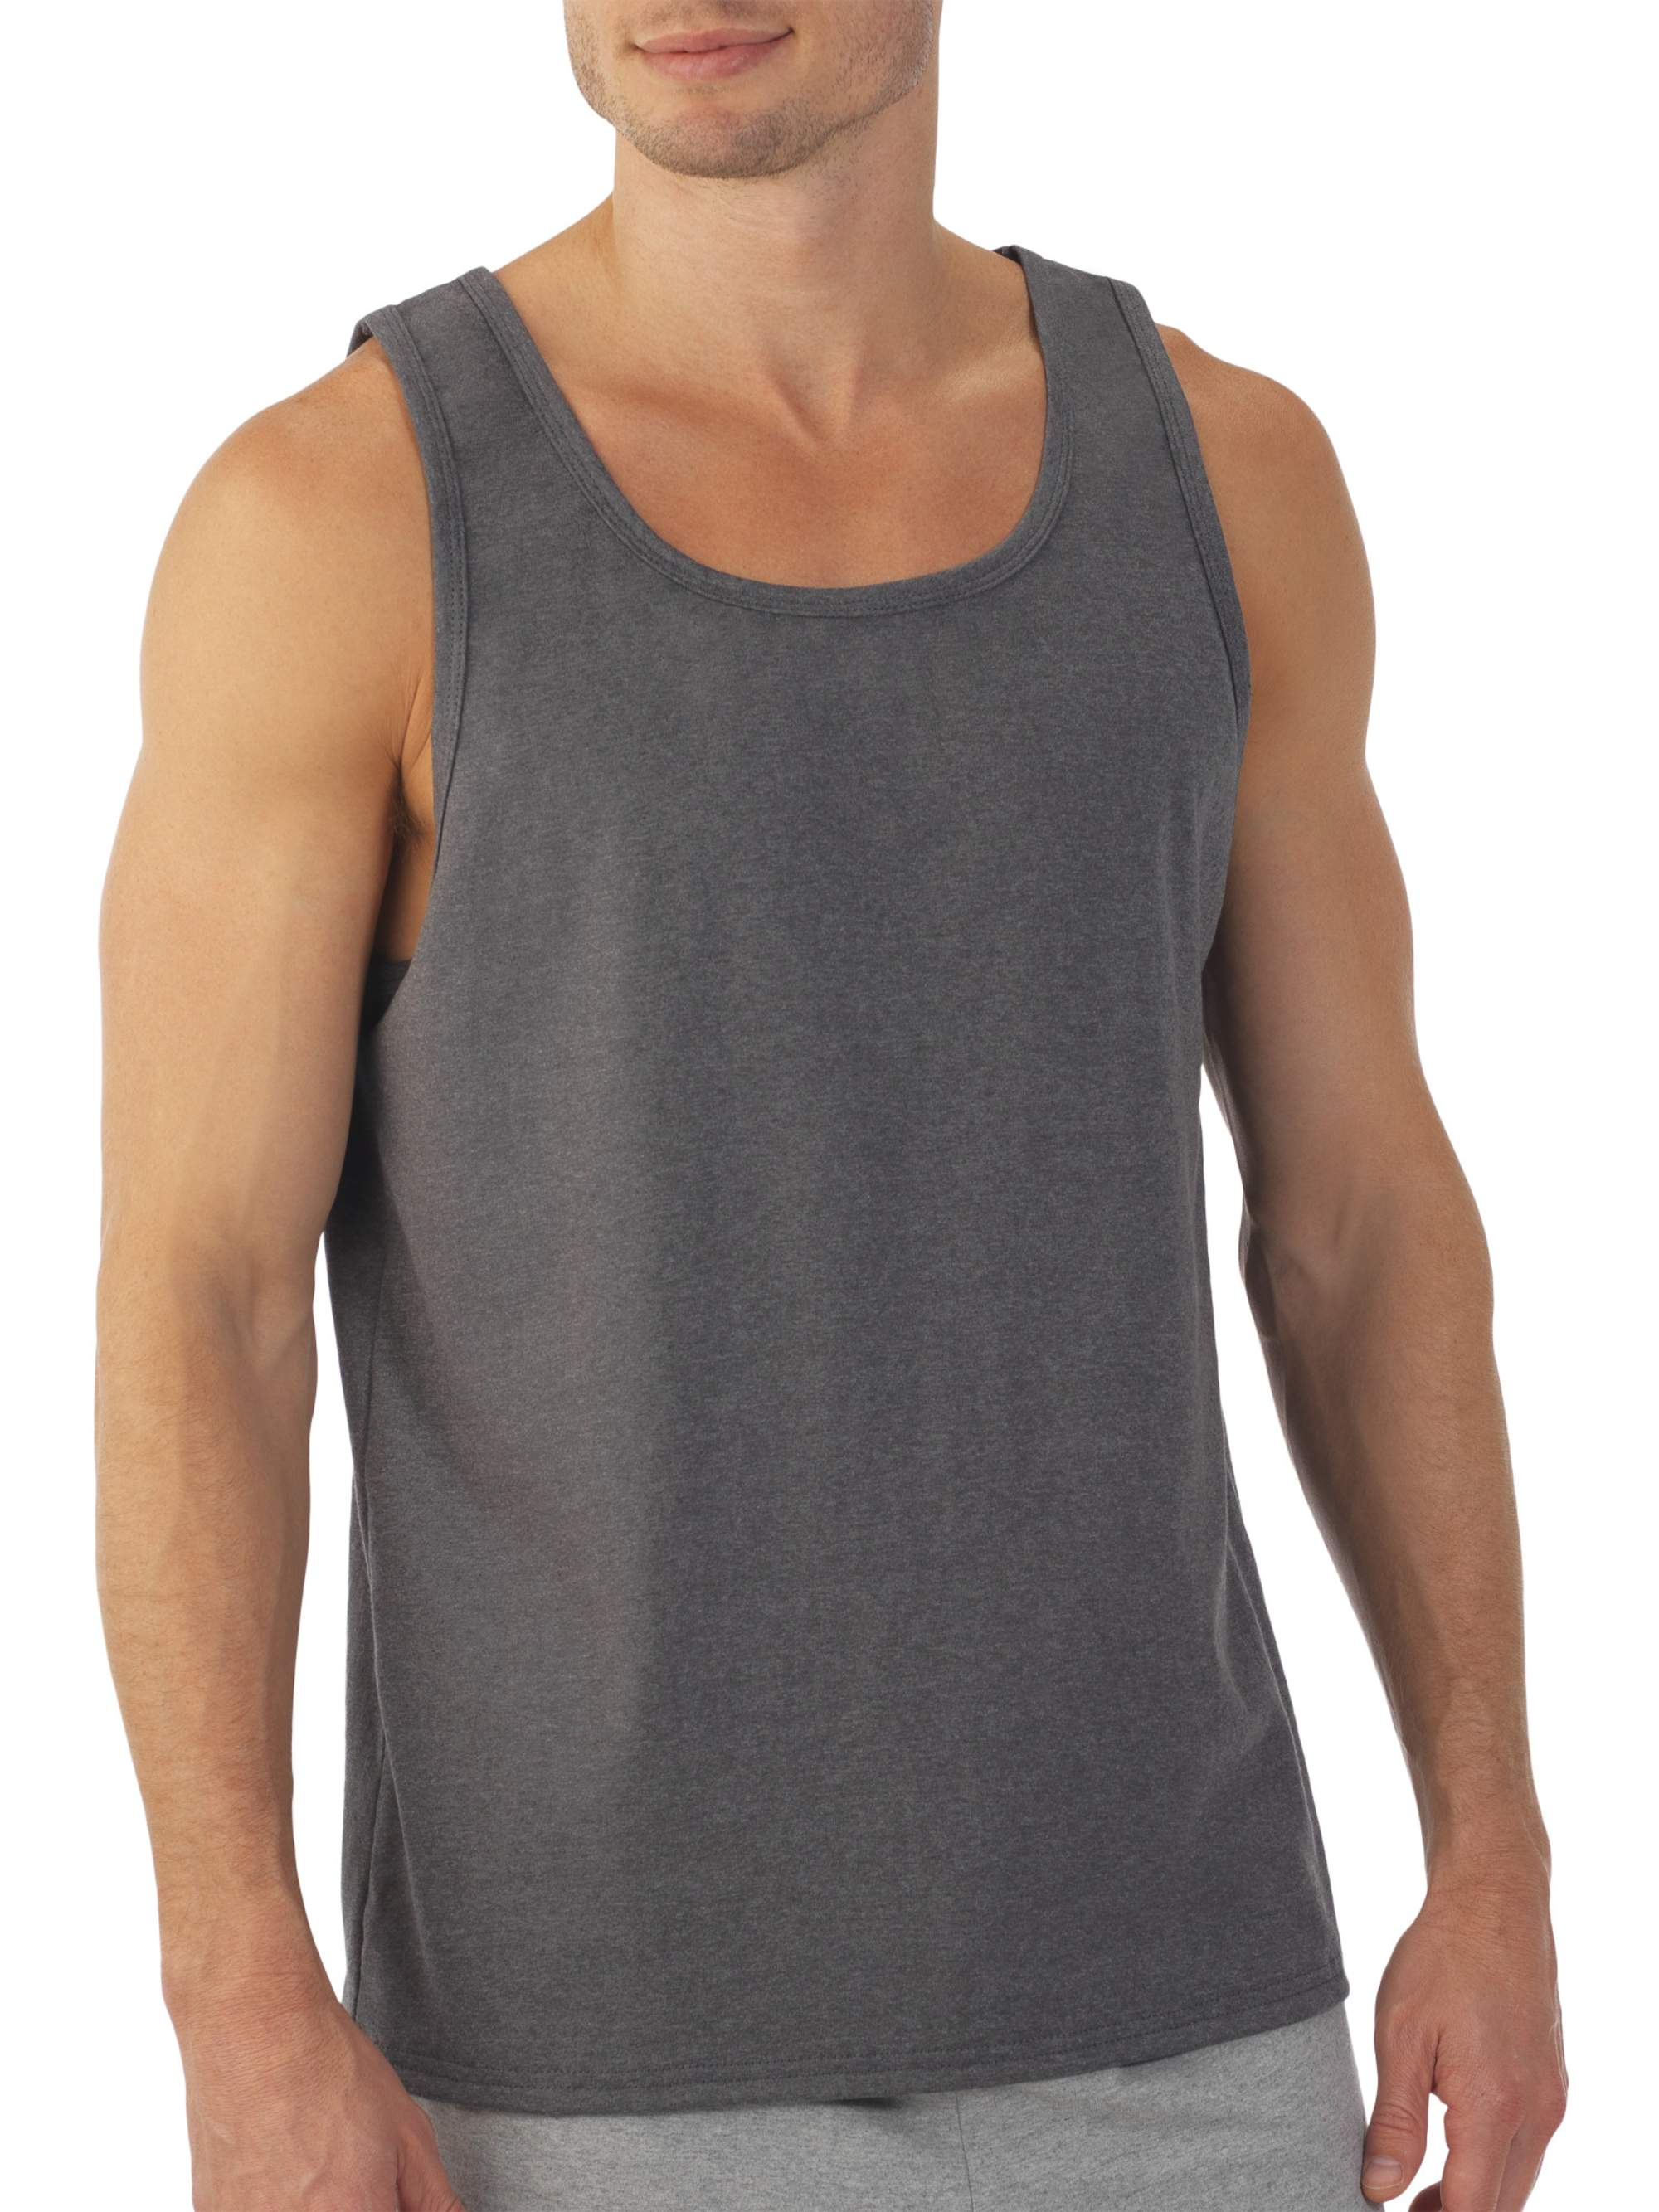 Fruit of the Loom - Men's Soft Jersey Tag Free Tank Top - Walmart.com